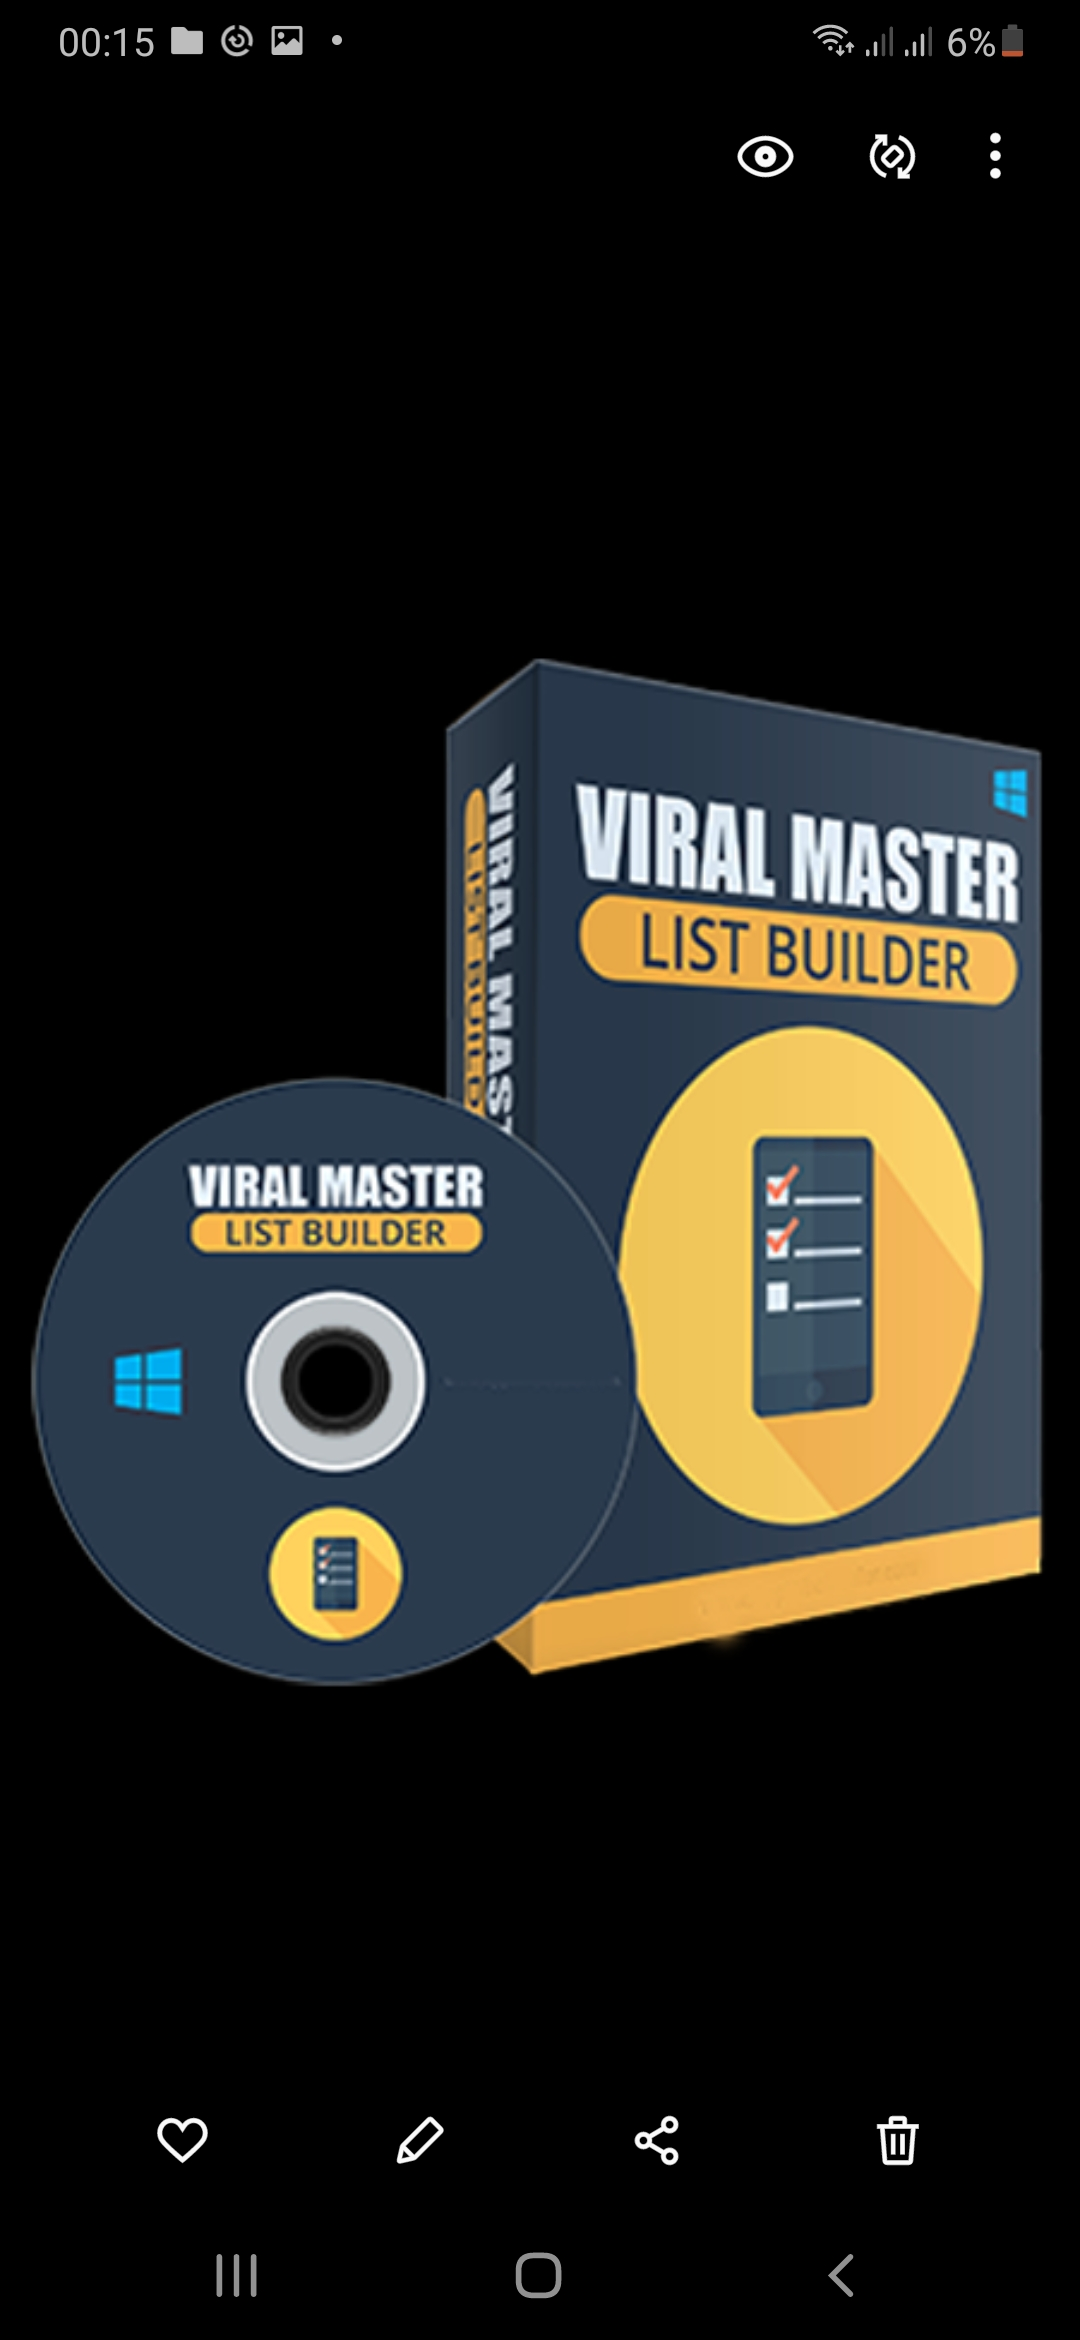 Viral master and list builder the great software